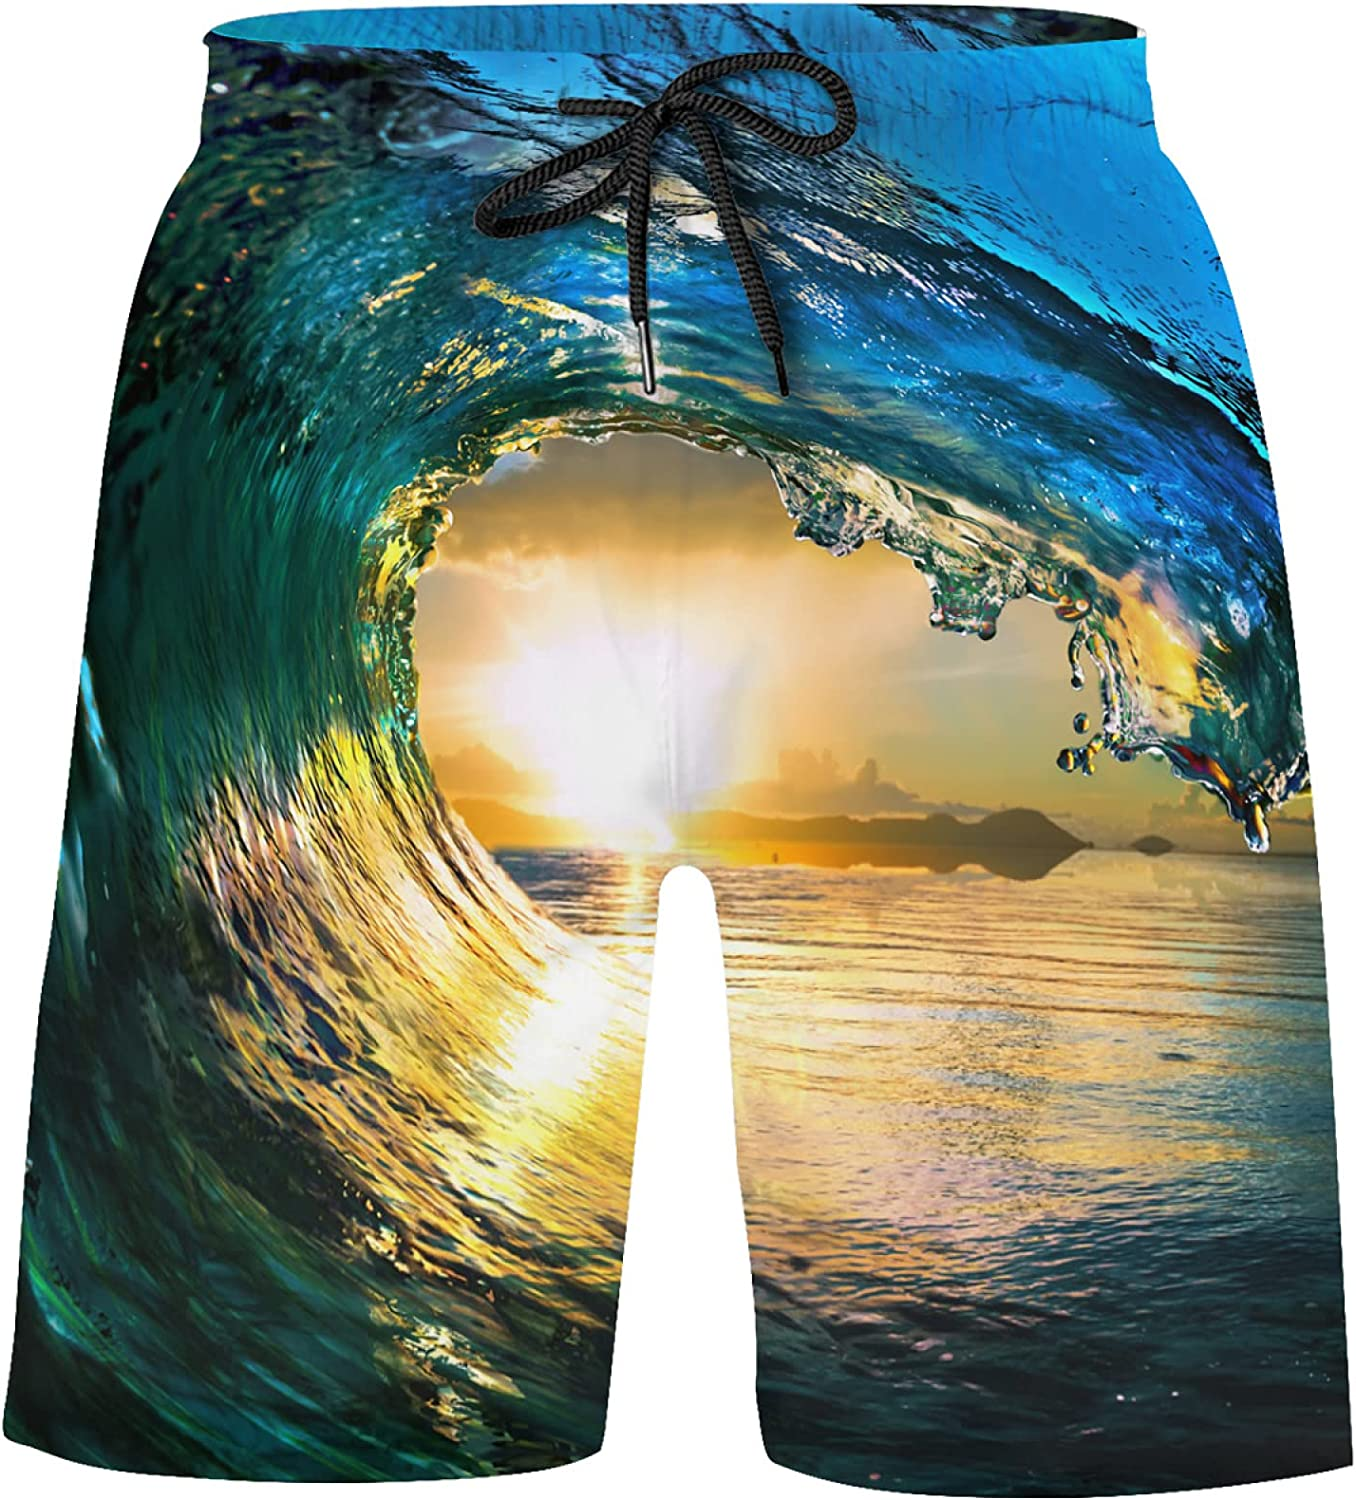 Pretty Ocean Waves Fall Down at Bathing Swim Limited time sale Boys Sunset Free Shipping Cheap Bargain Gift Trunks